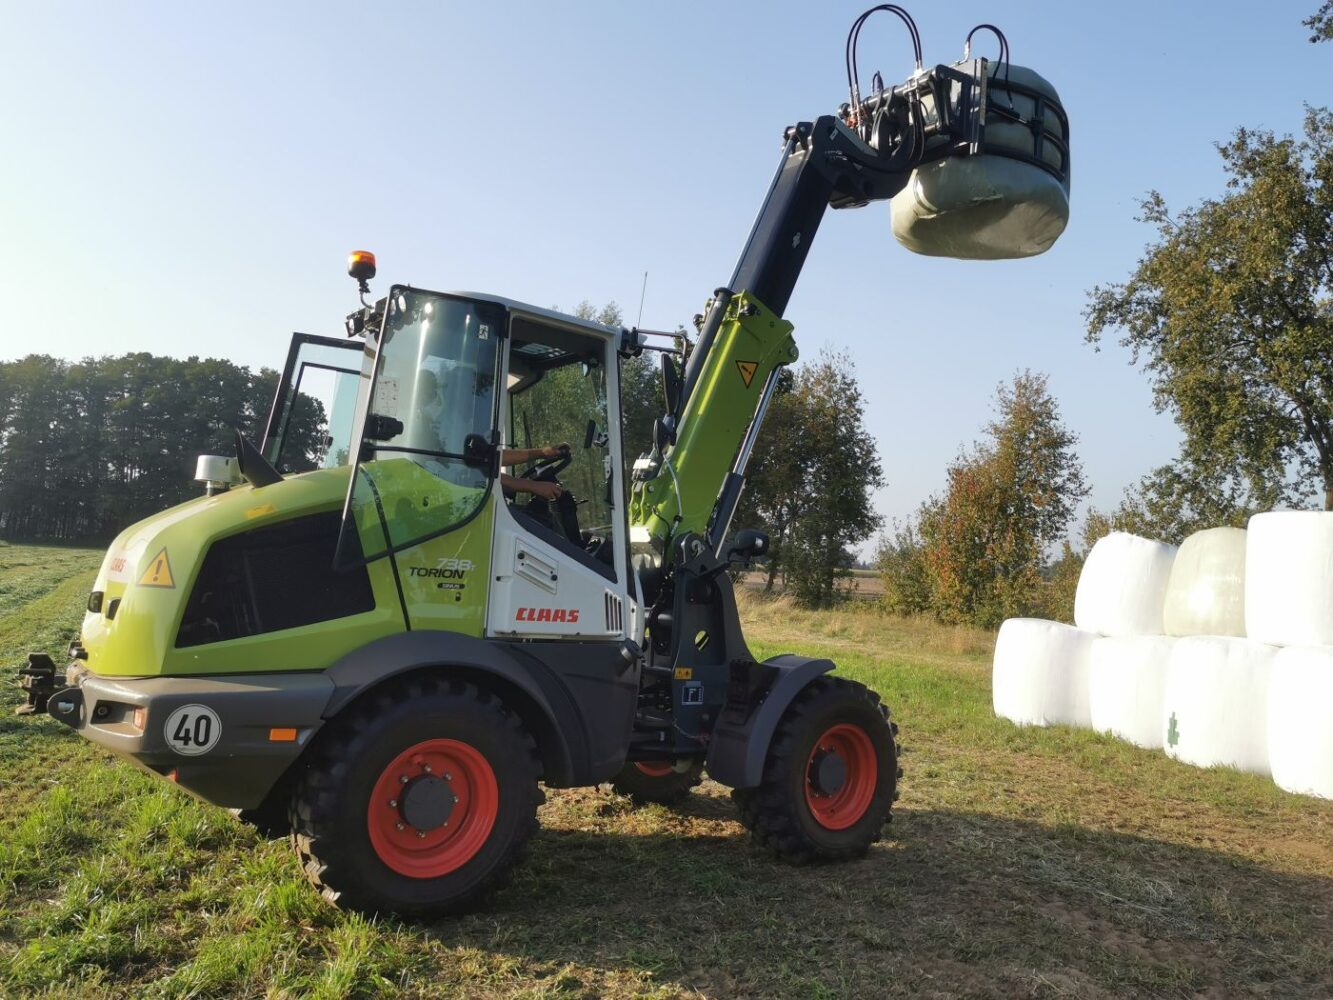 CLAAS Torion 2